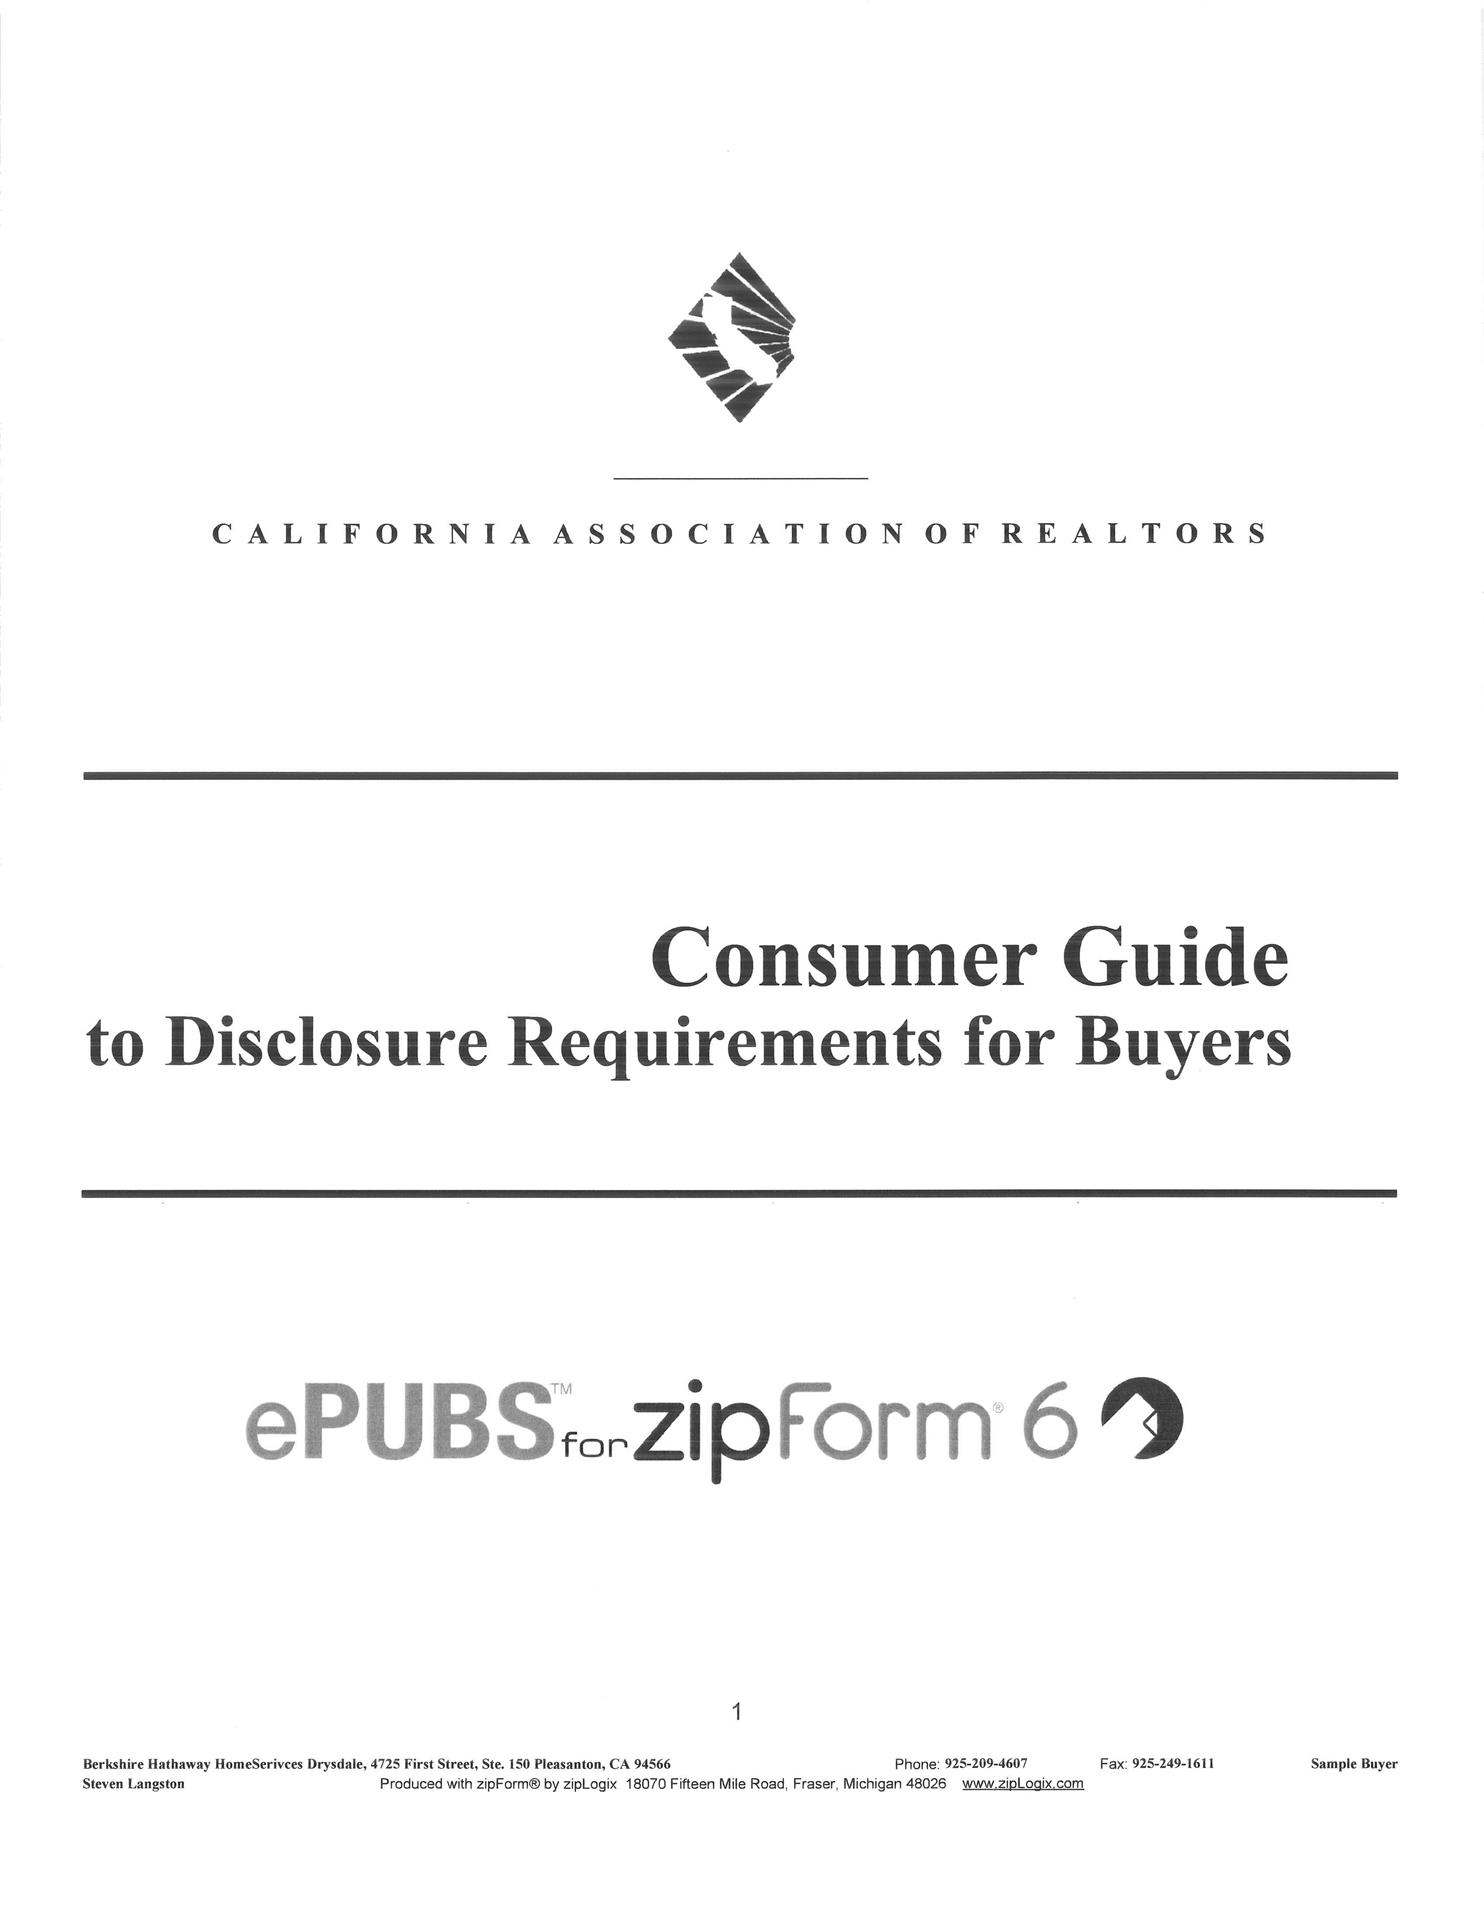 Guide to Disclosures for Buyers